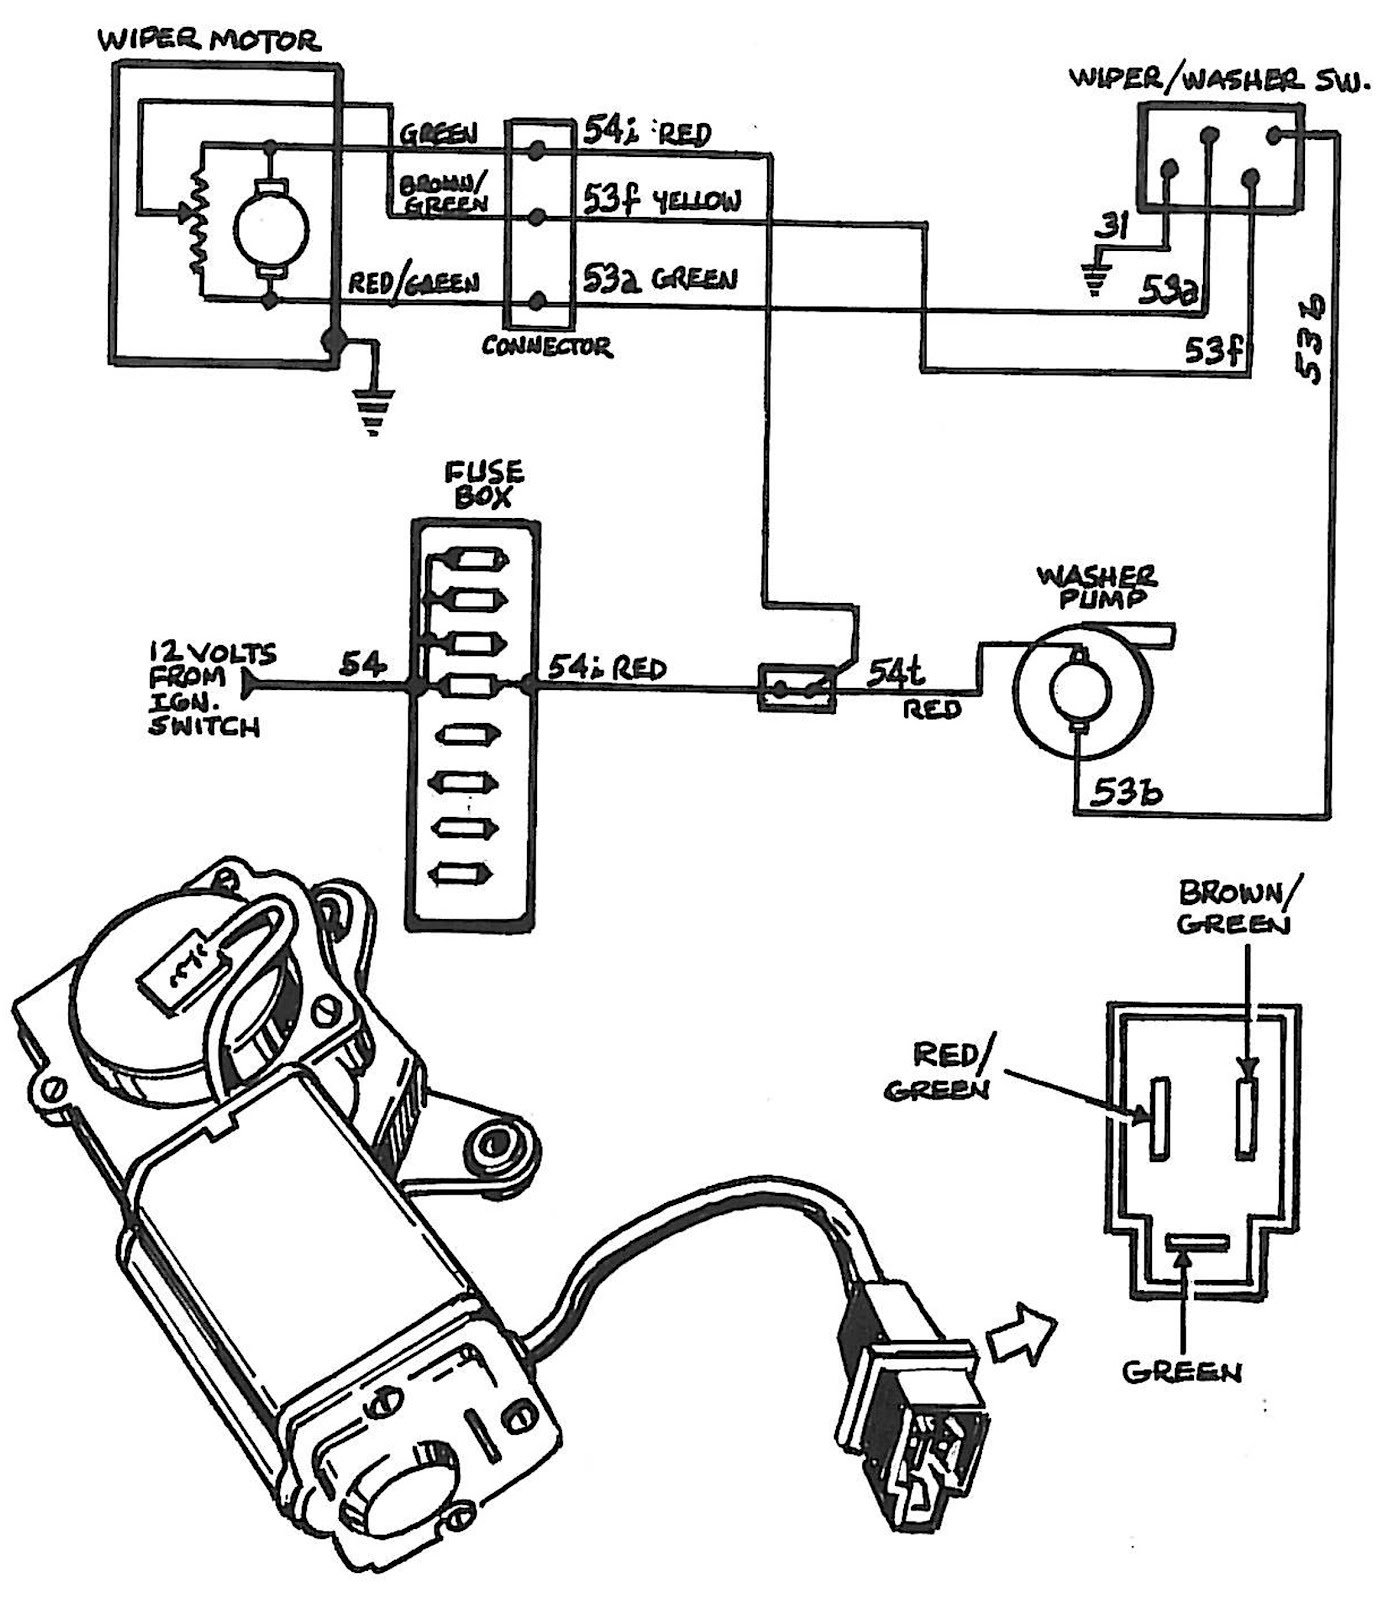 chevy windshield wiper motor wiring diagram CgTTPww wiring diagram for boat wiper motor the wiring diagram vetus wiper motor wiring diagram at reclaimingppi.co